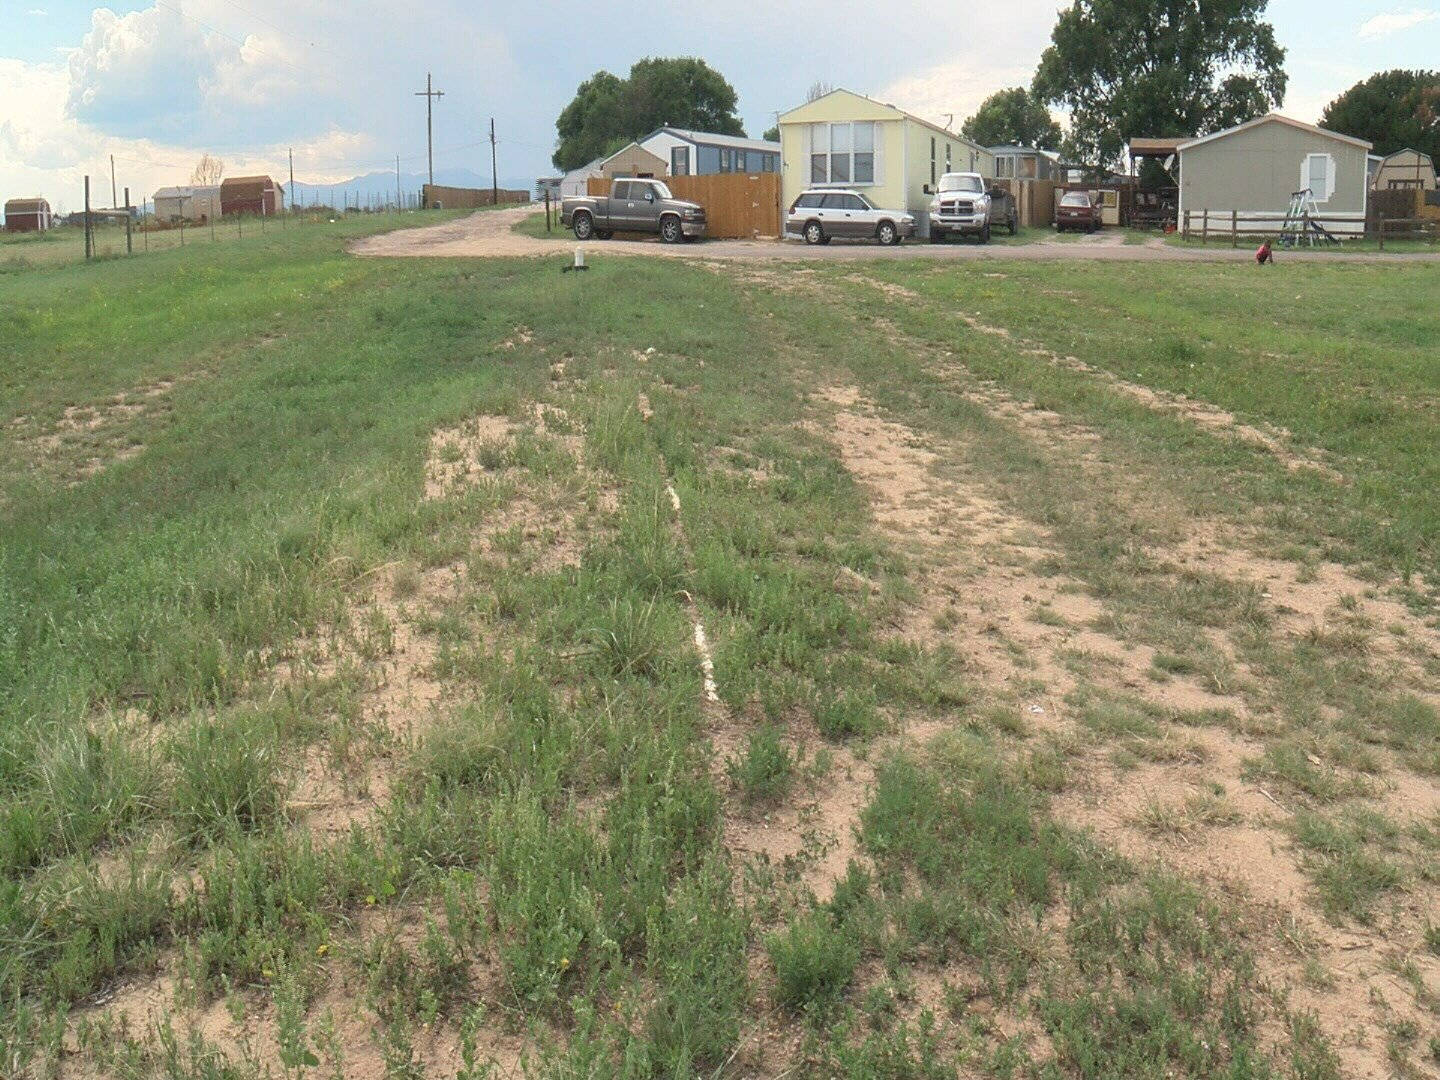 News 5 Investigates discovered a mobile home complex in eastern El Paso County has violated water quality regulations for years, putting dozens of people at risk.